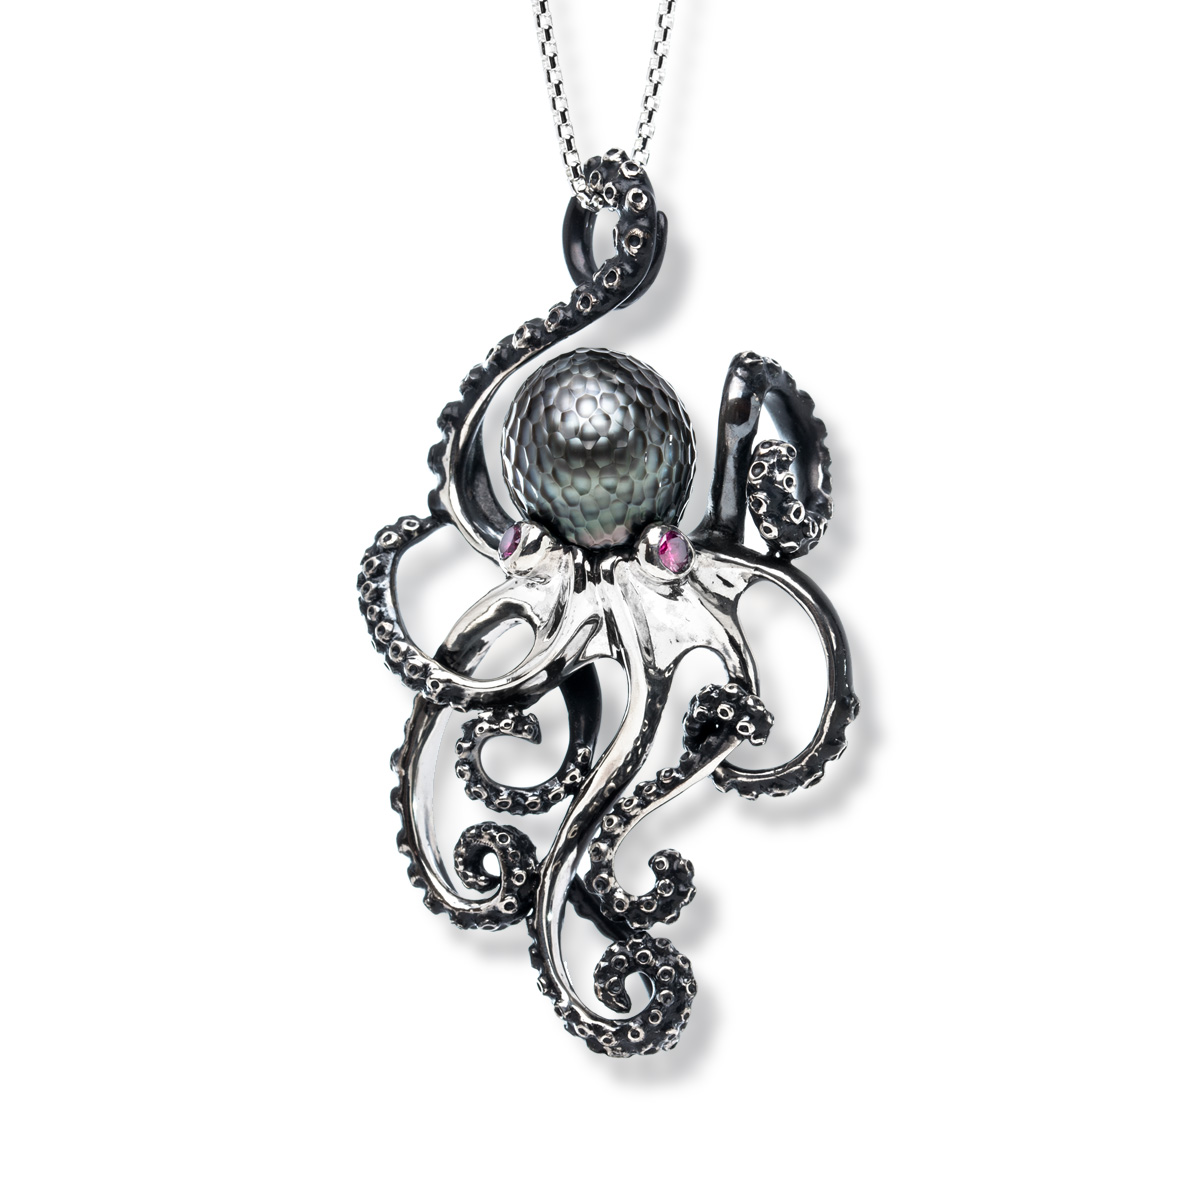 by pendant steampunk lucy neko octopus original loves lucylovesneko product necklace large